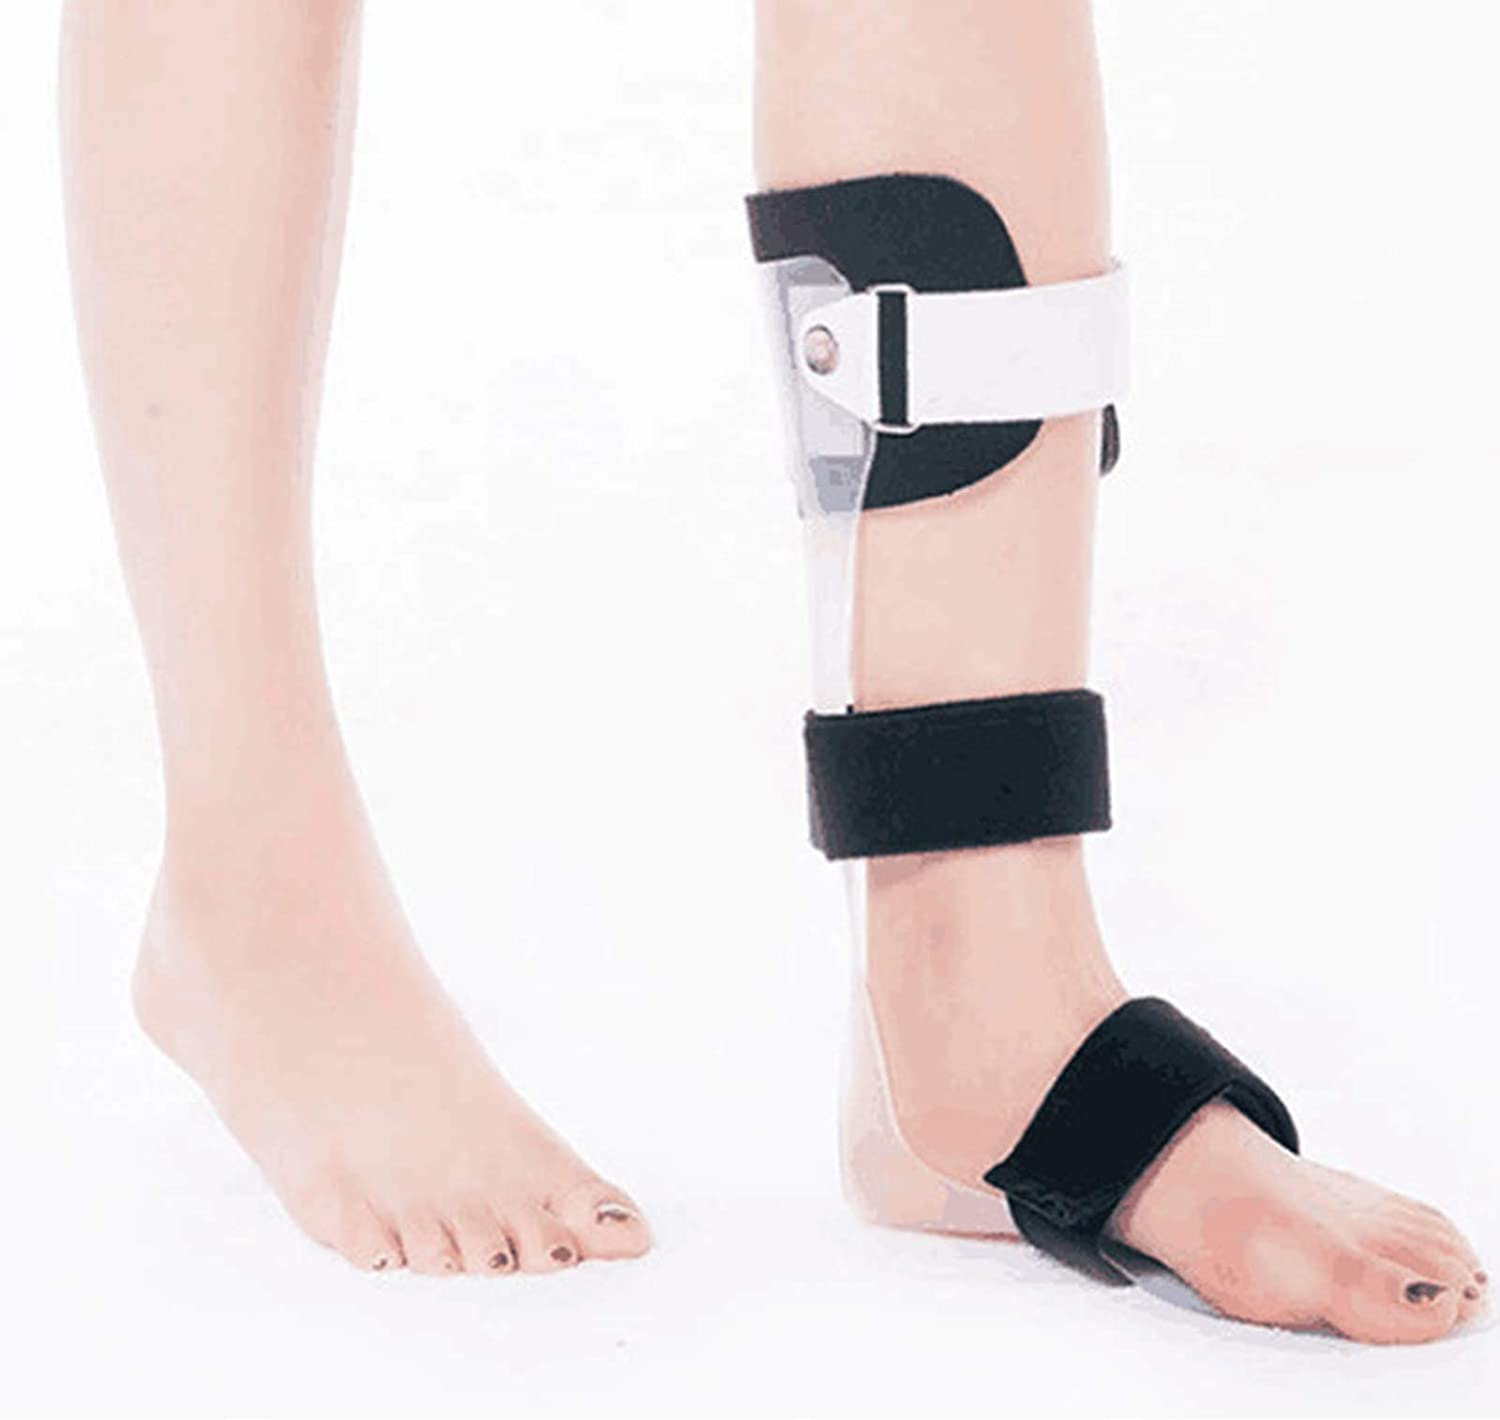 ZYQDRZ Ankle Product Fashion Fixation Brace Ankle-Foot Orthosis Traction F for